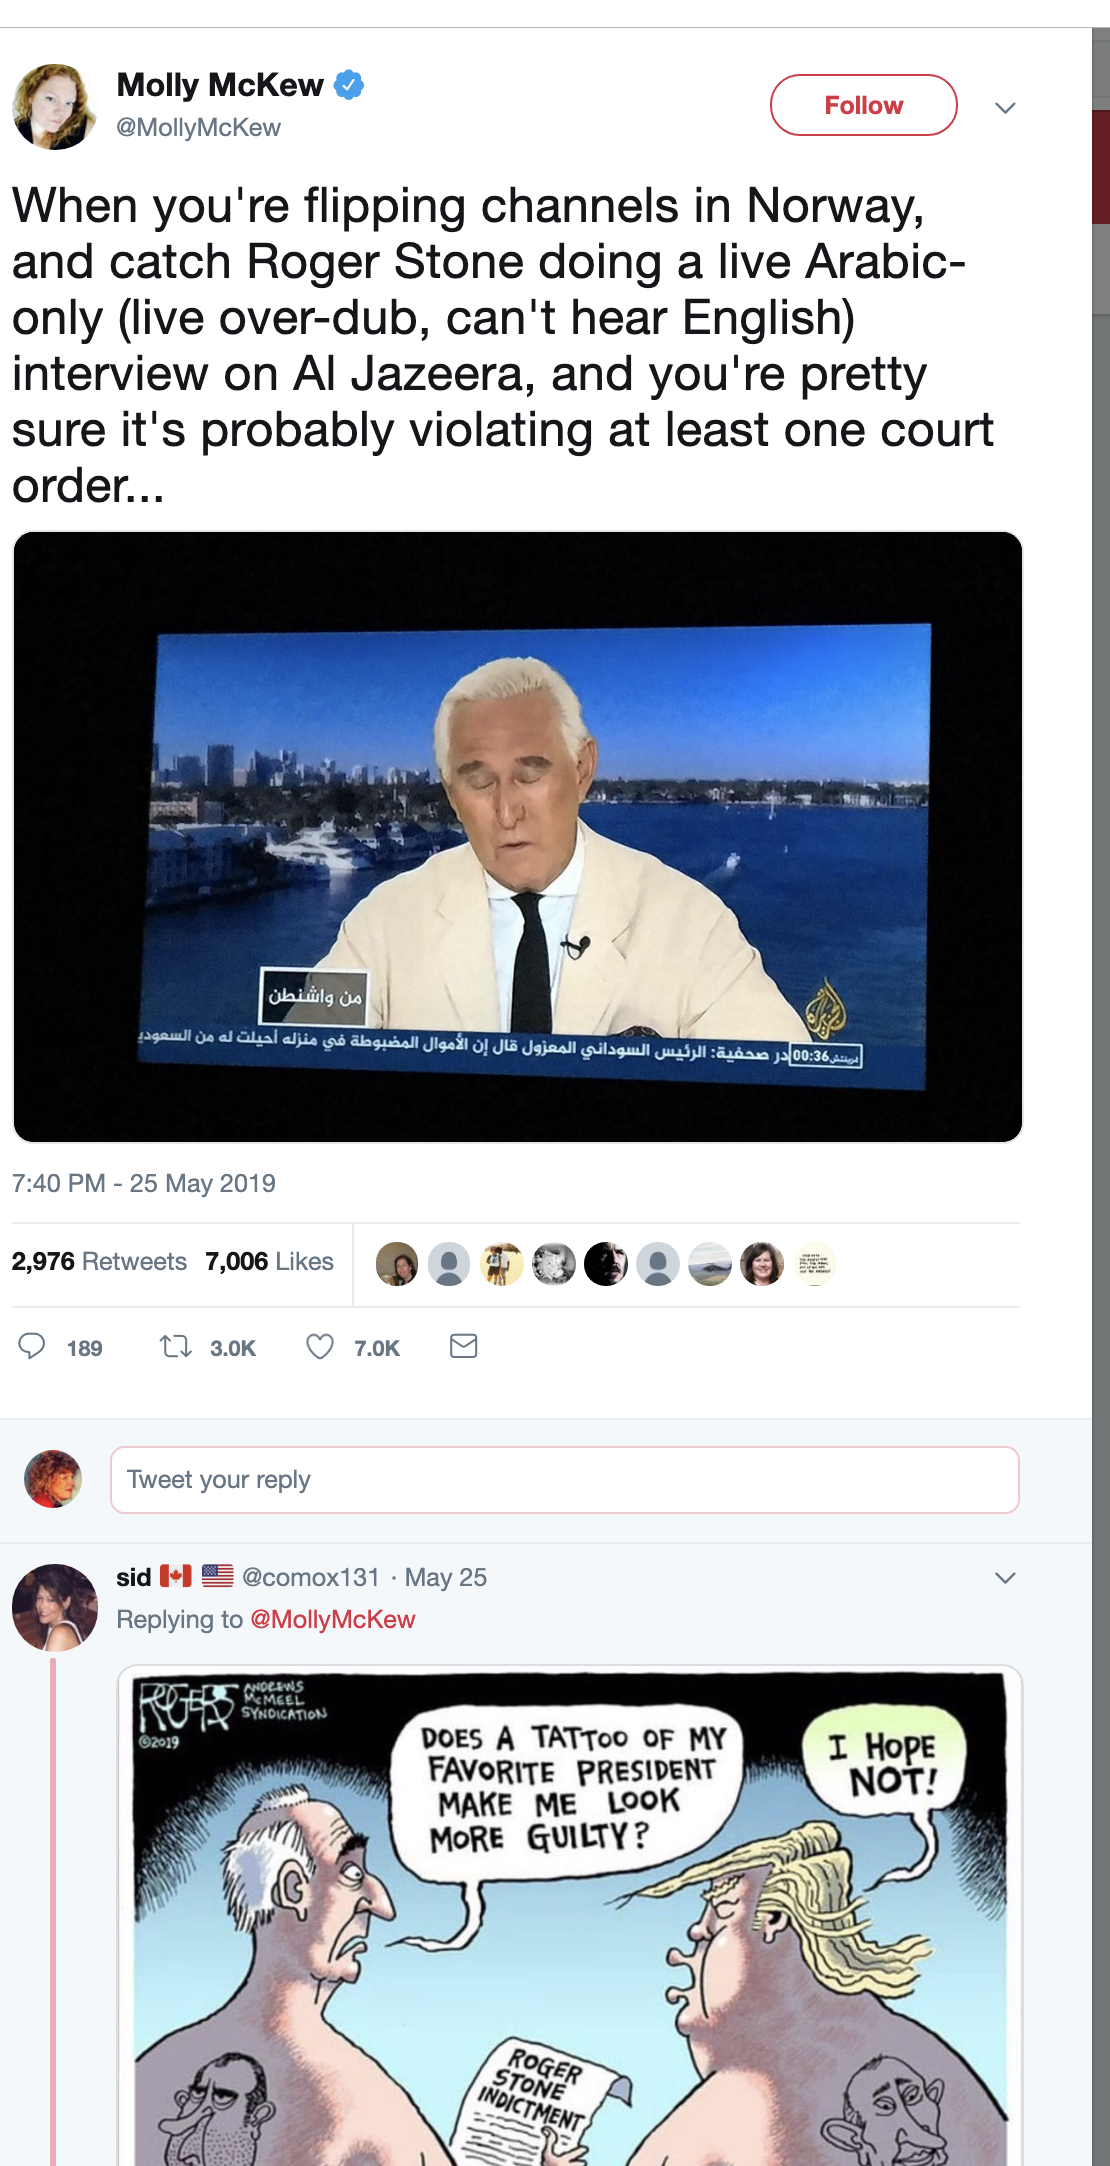 Screen-Shot-2019-05-30-at-10.37.04-AM World-Ending Bombshell Ruins Roger Stone's Day In Court Corruption Crime Donald Trump Election 2016 Investigation Mueller Politics Robert Mueller Russia Top Stories